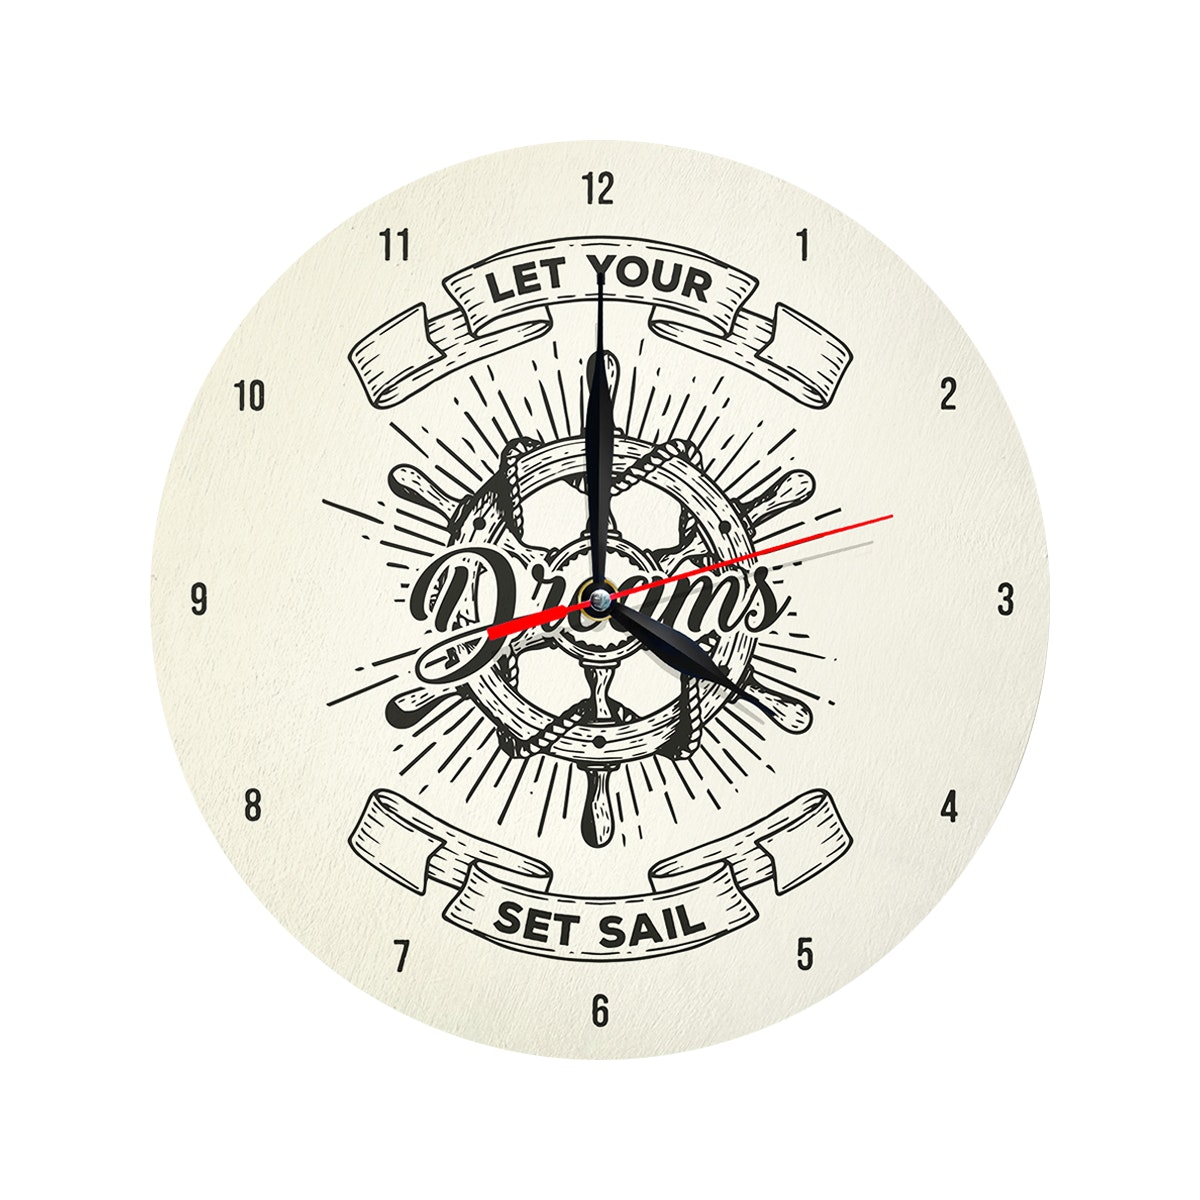 Kayugraphy Jam Dinding Wall Clock Let Your Dreams Set Sail 30x30 cm JB037